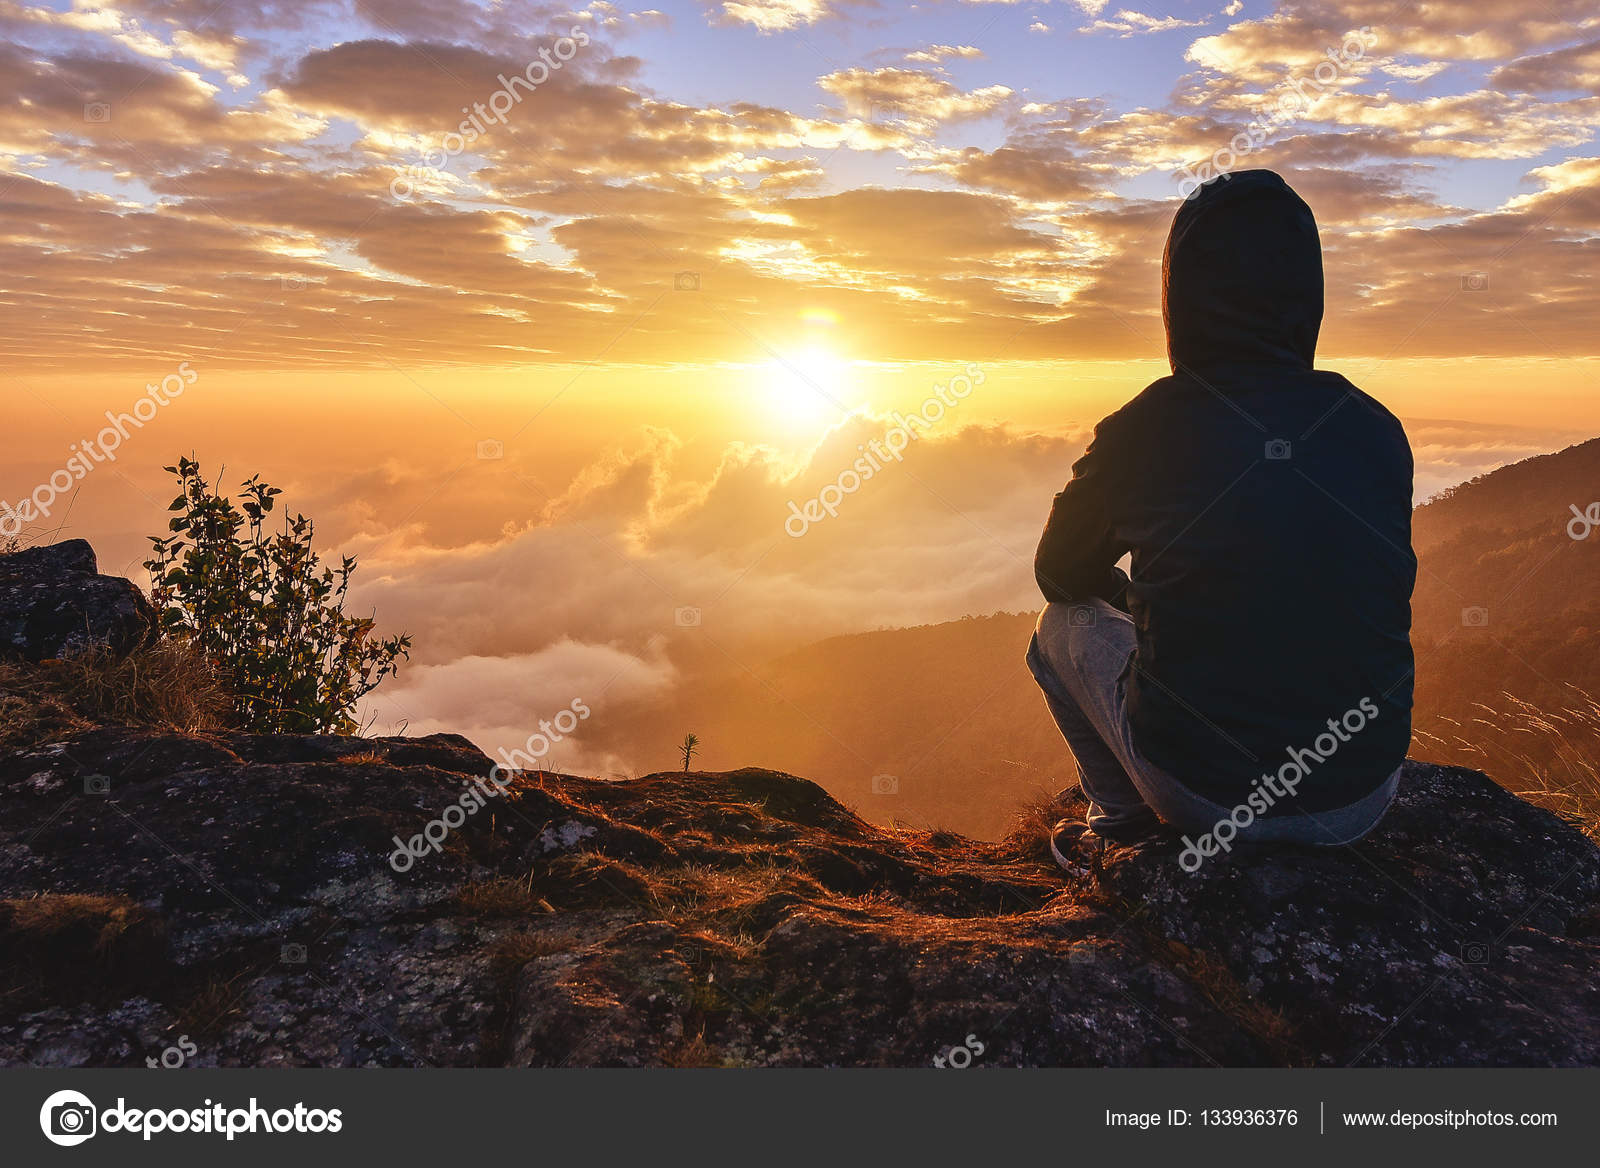 Lonely Man Sitting On A Mountain For Watching Sunrise Views Alone Stock Photo By C Theerapong28 133936376 Alone man loneliness nature clouds rocks